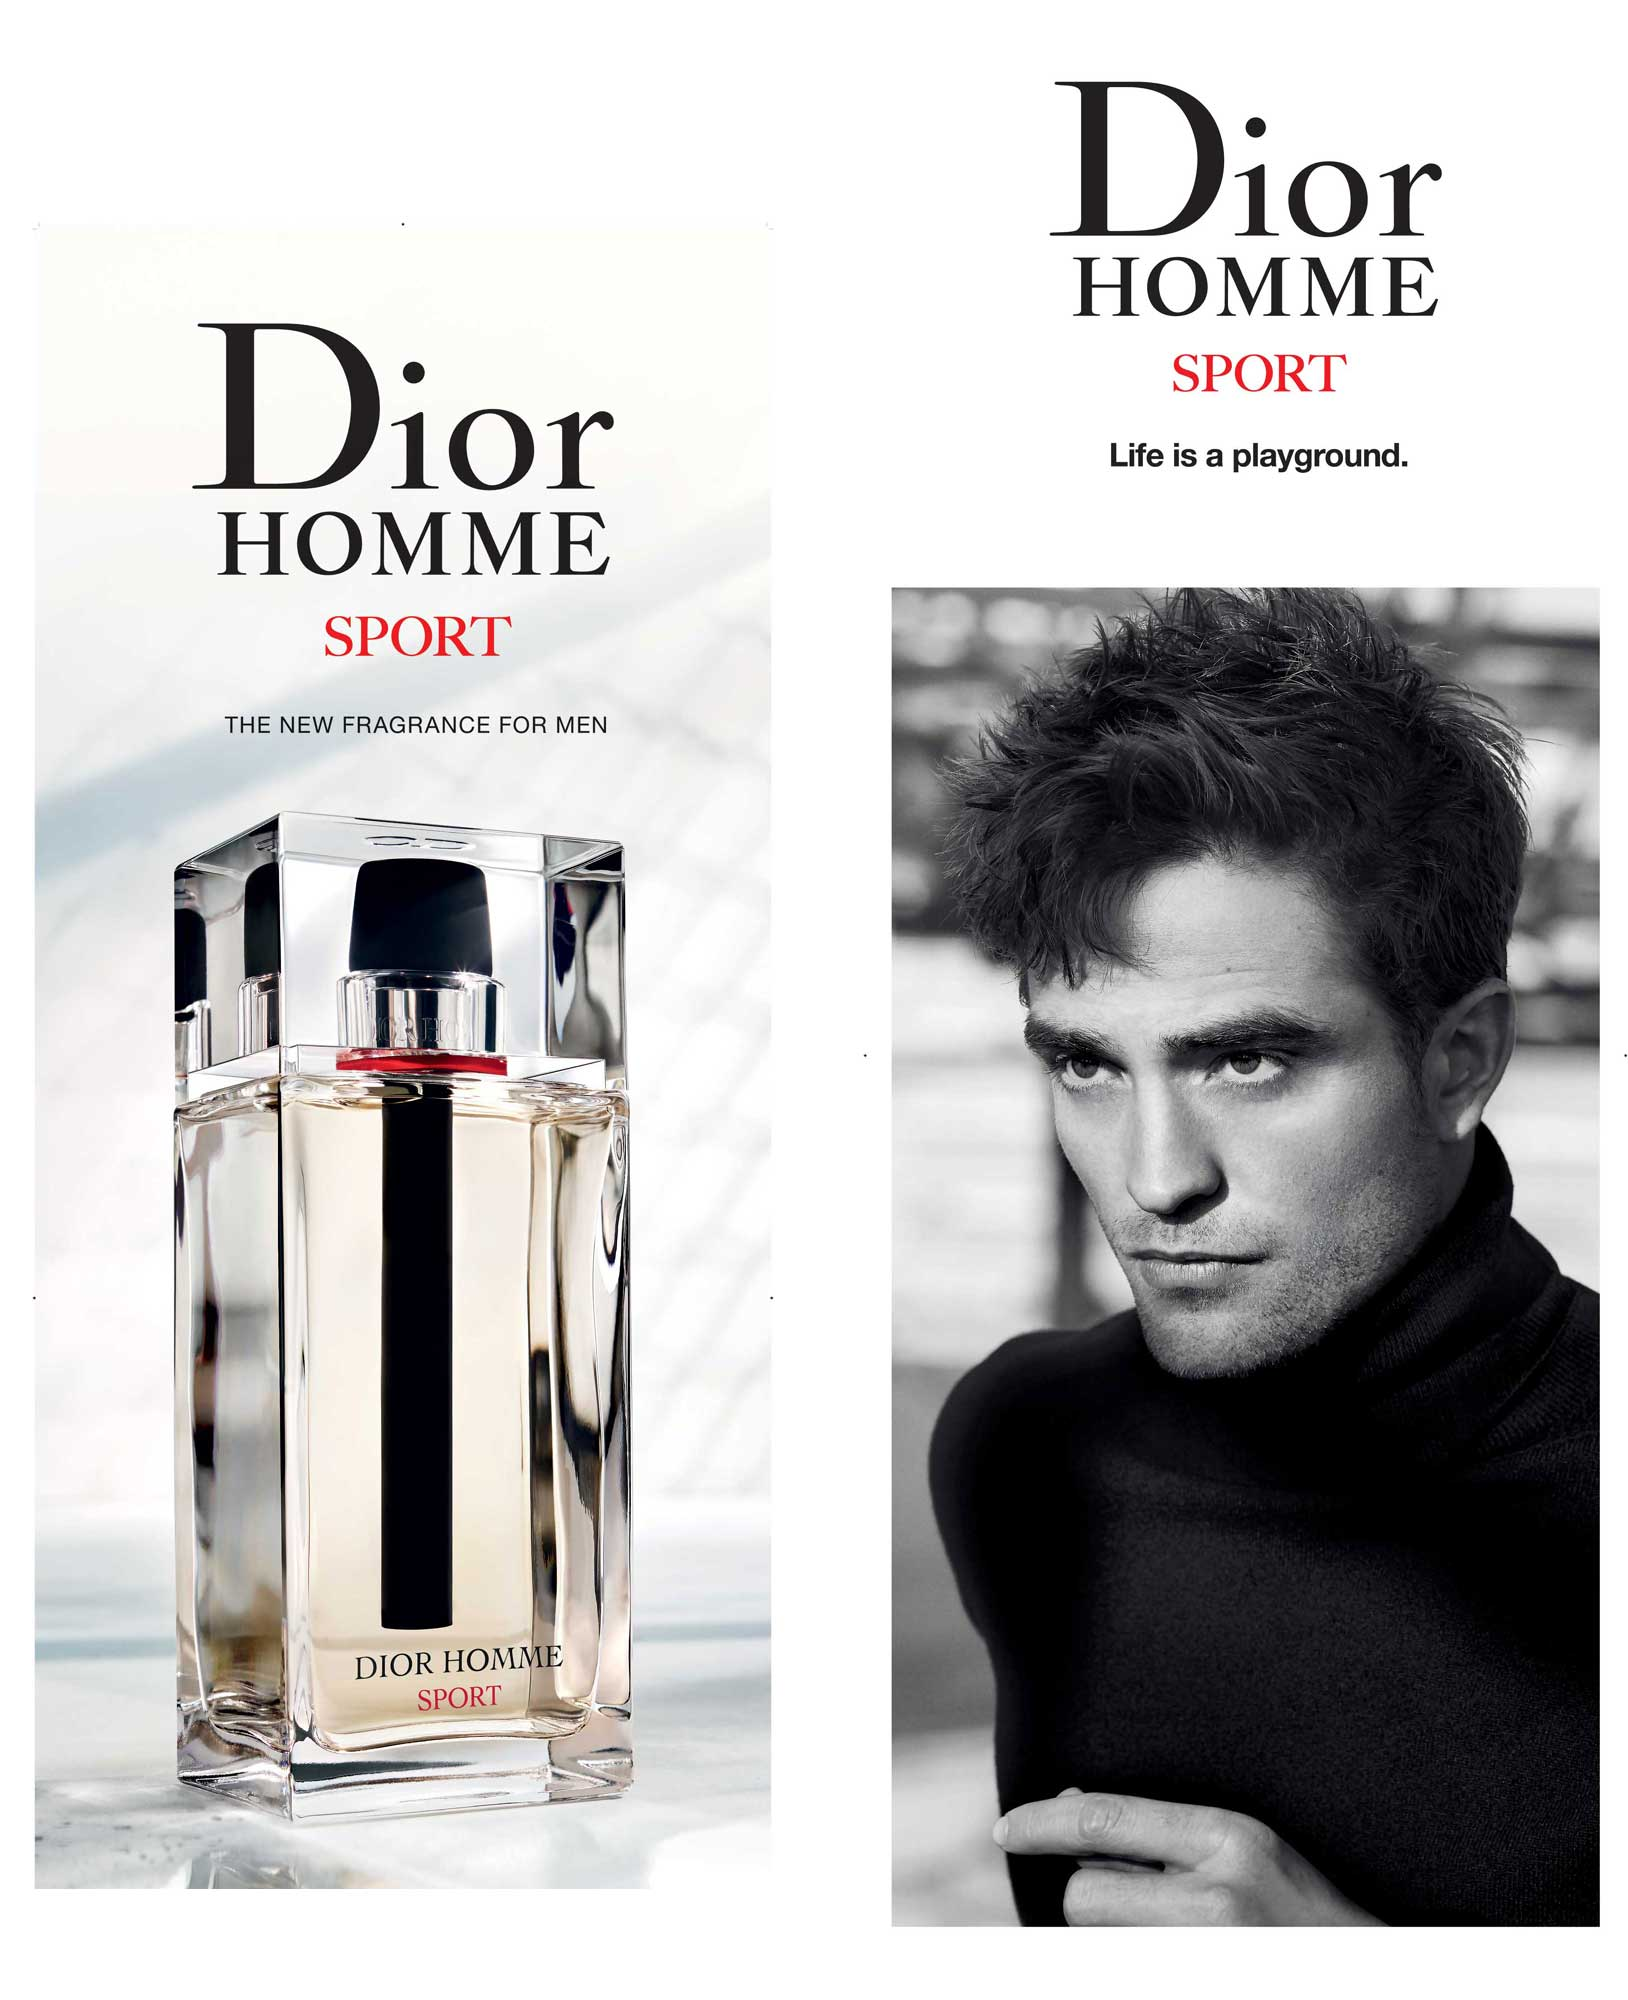 dior homme sport 2017 commercial